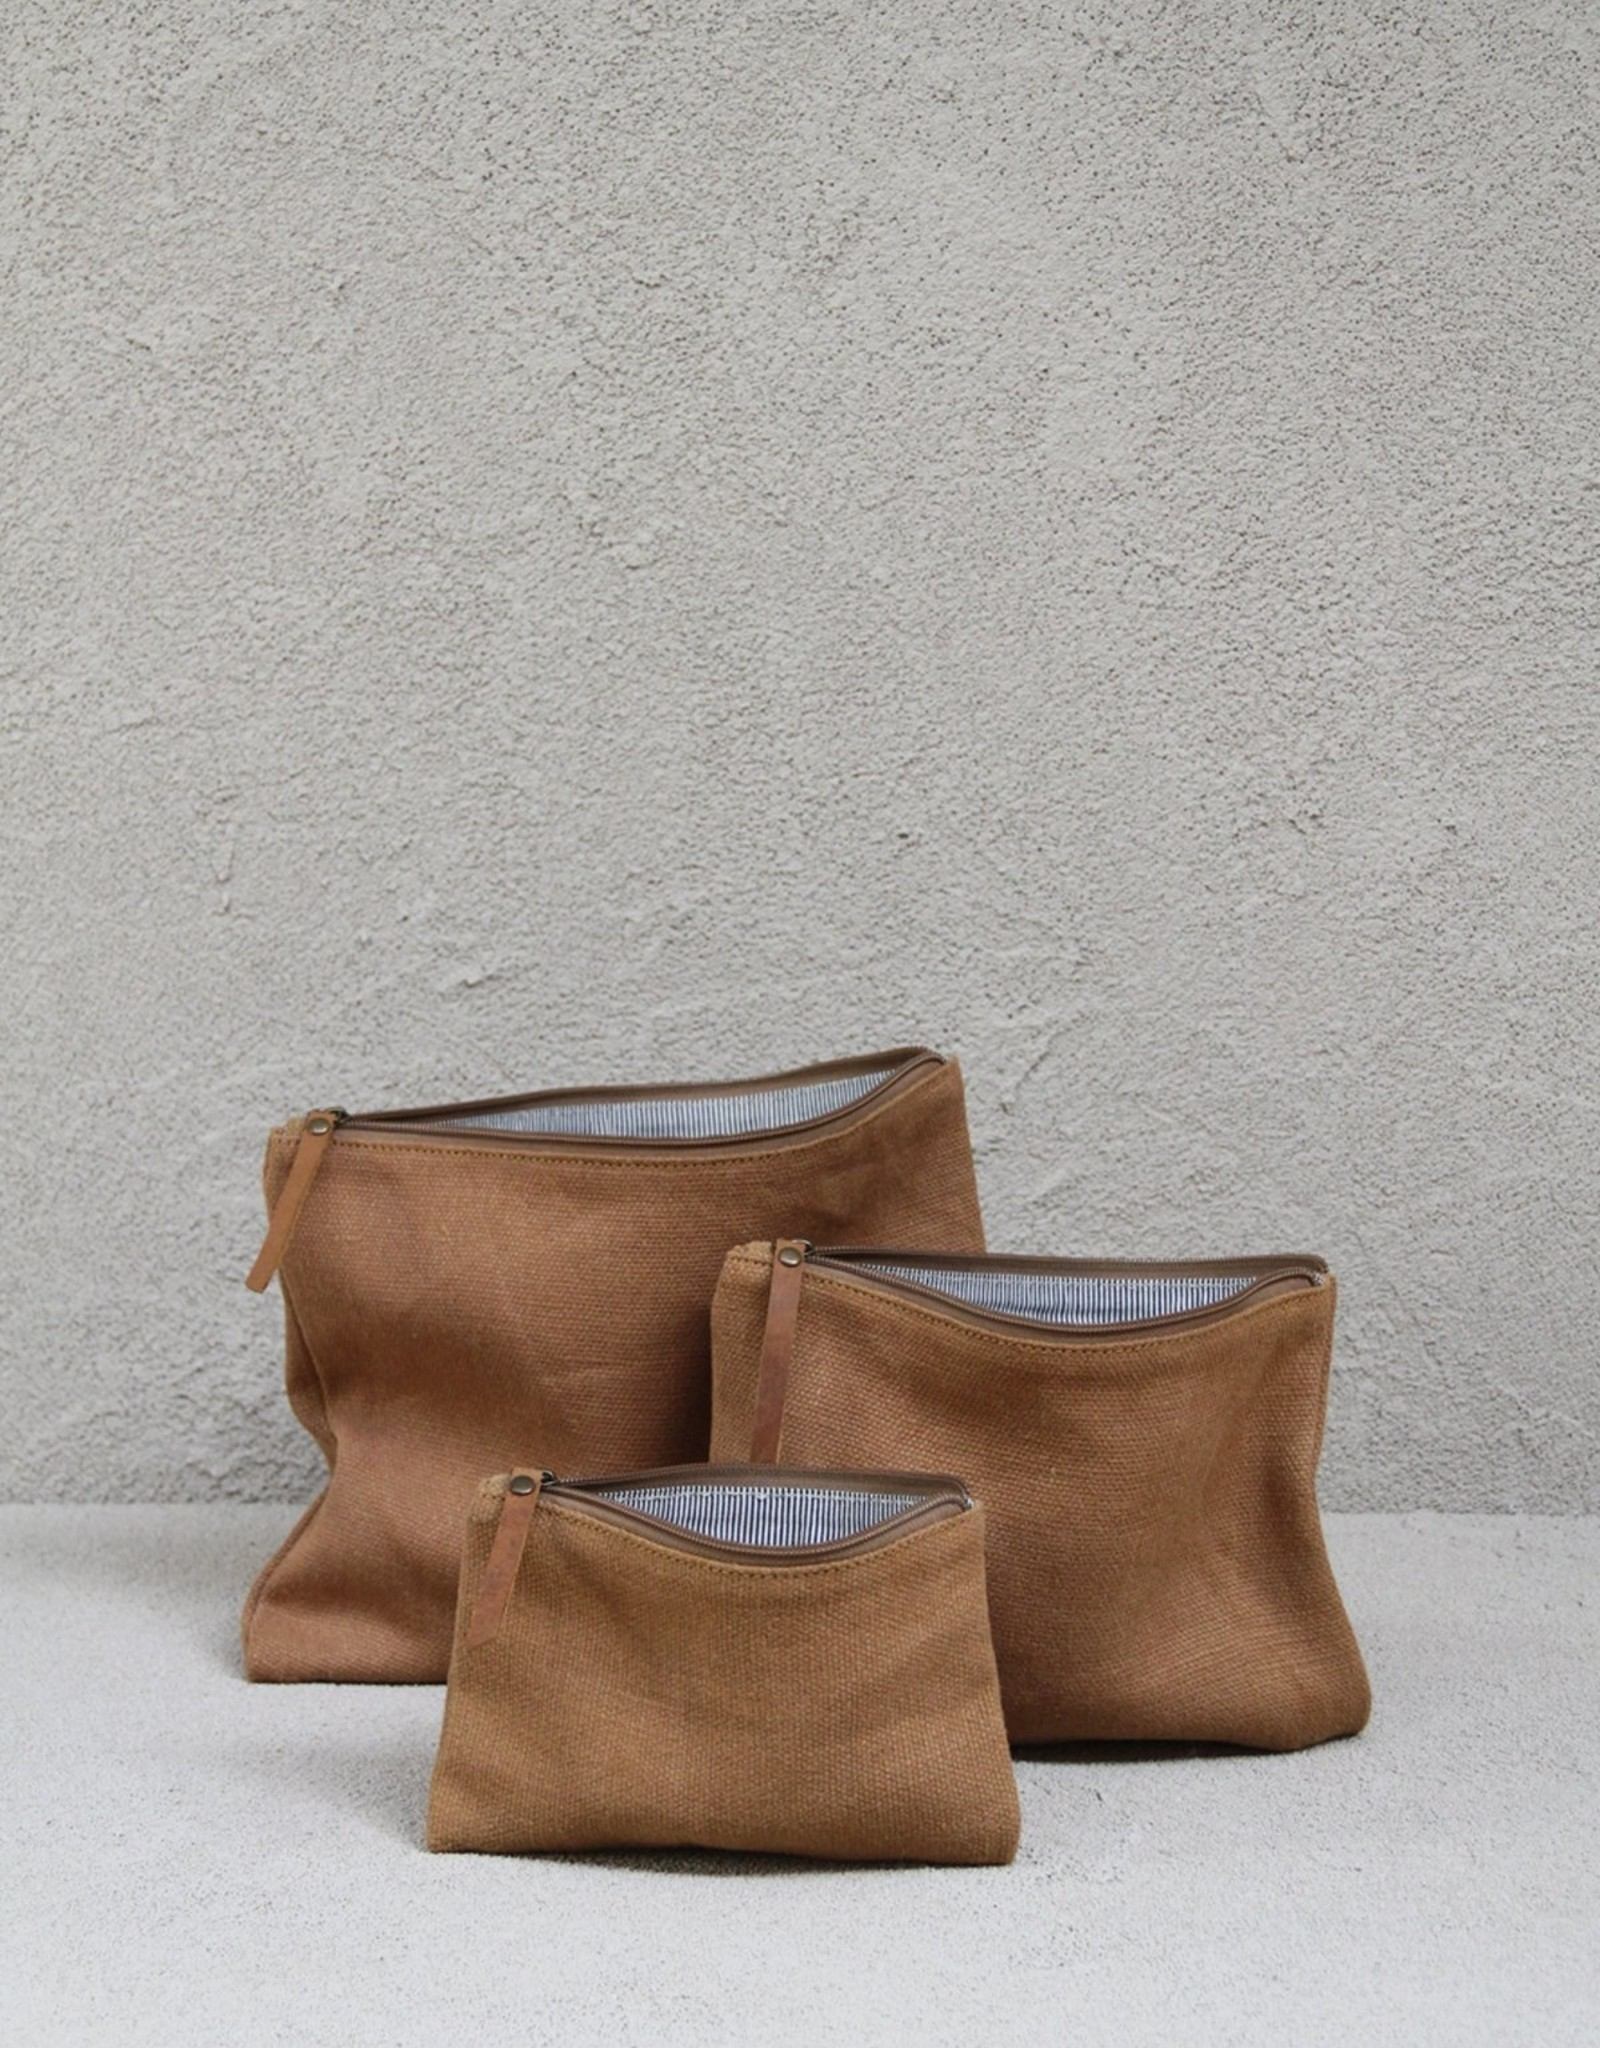 THE DHARMA DOOR JUTE CANVAS POUCH SMALL - CAMEL